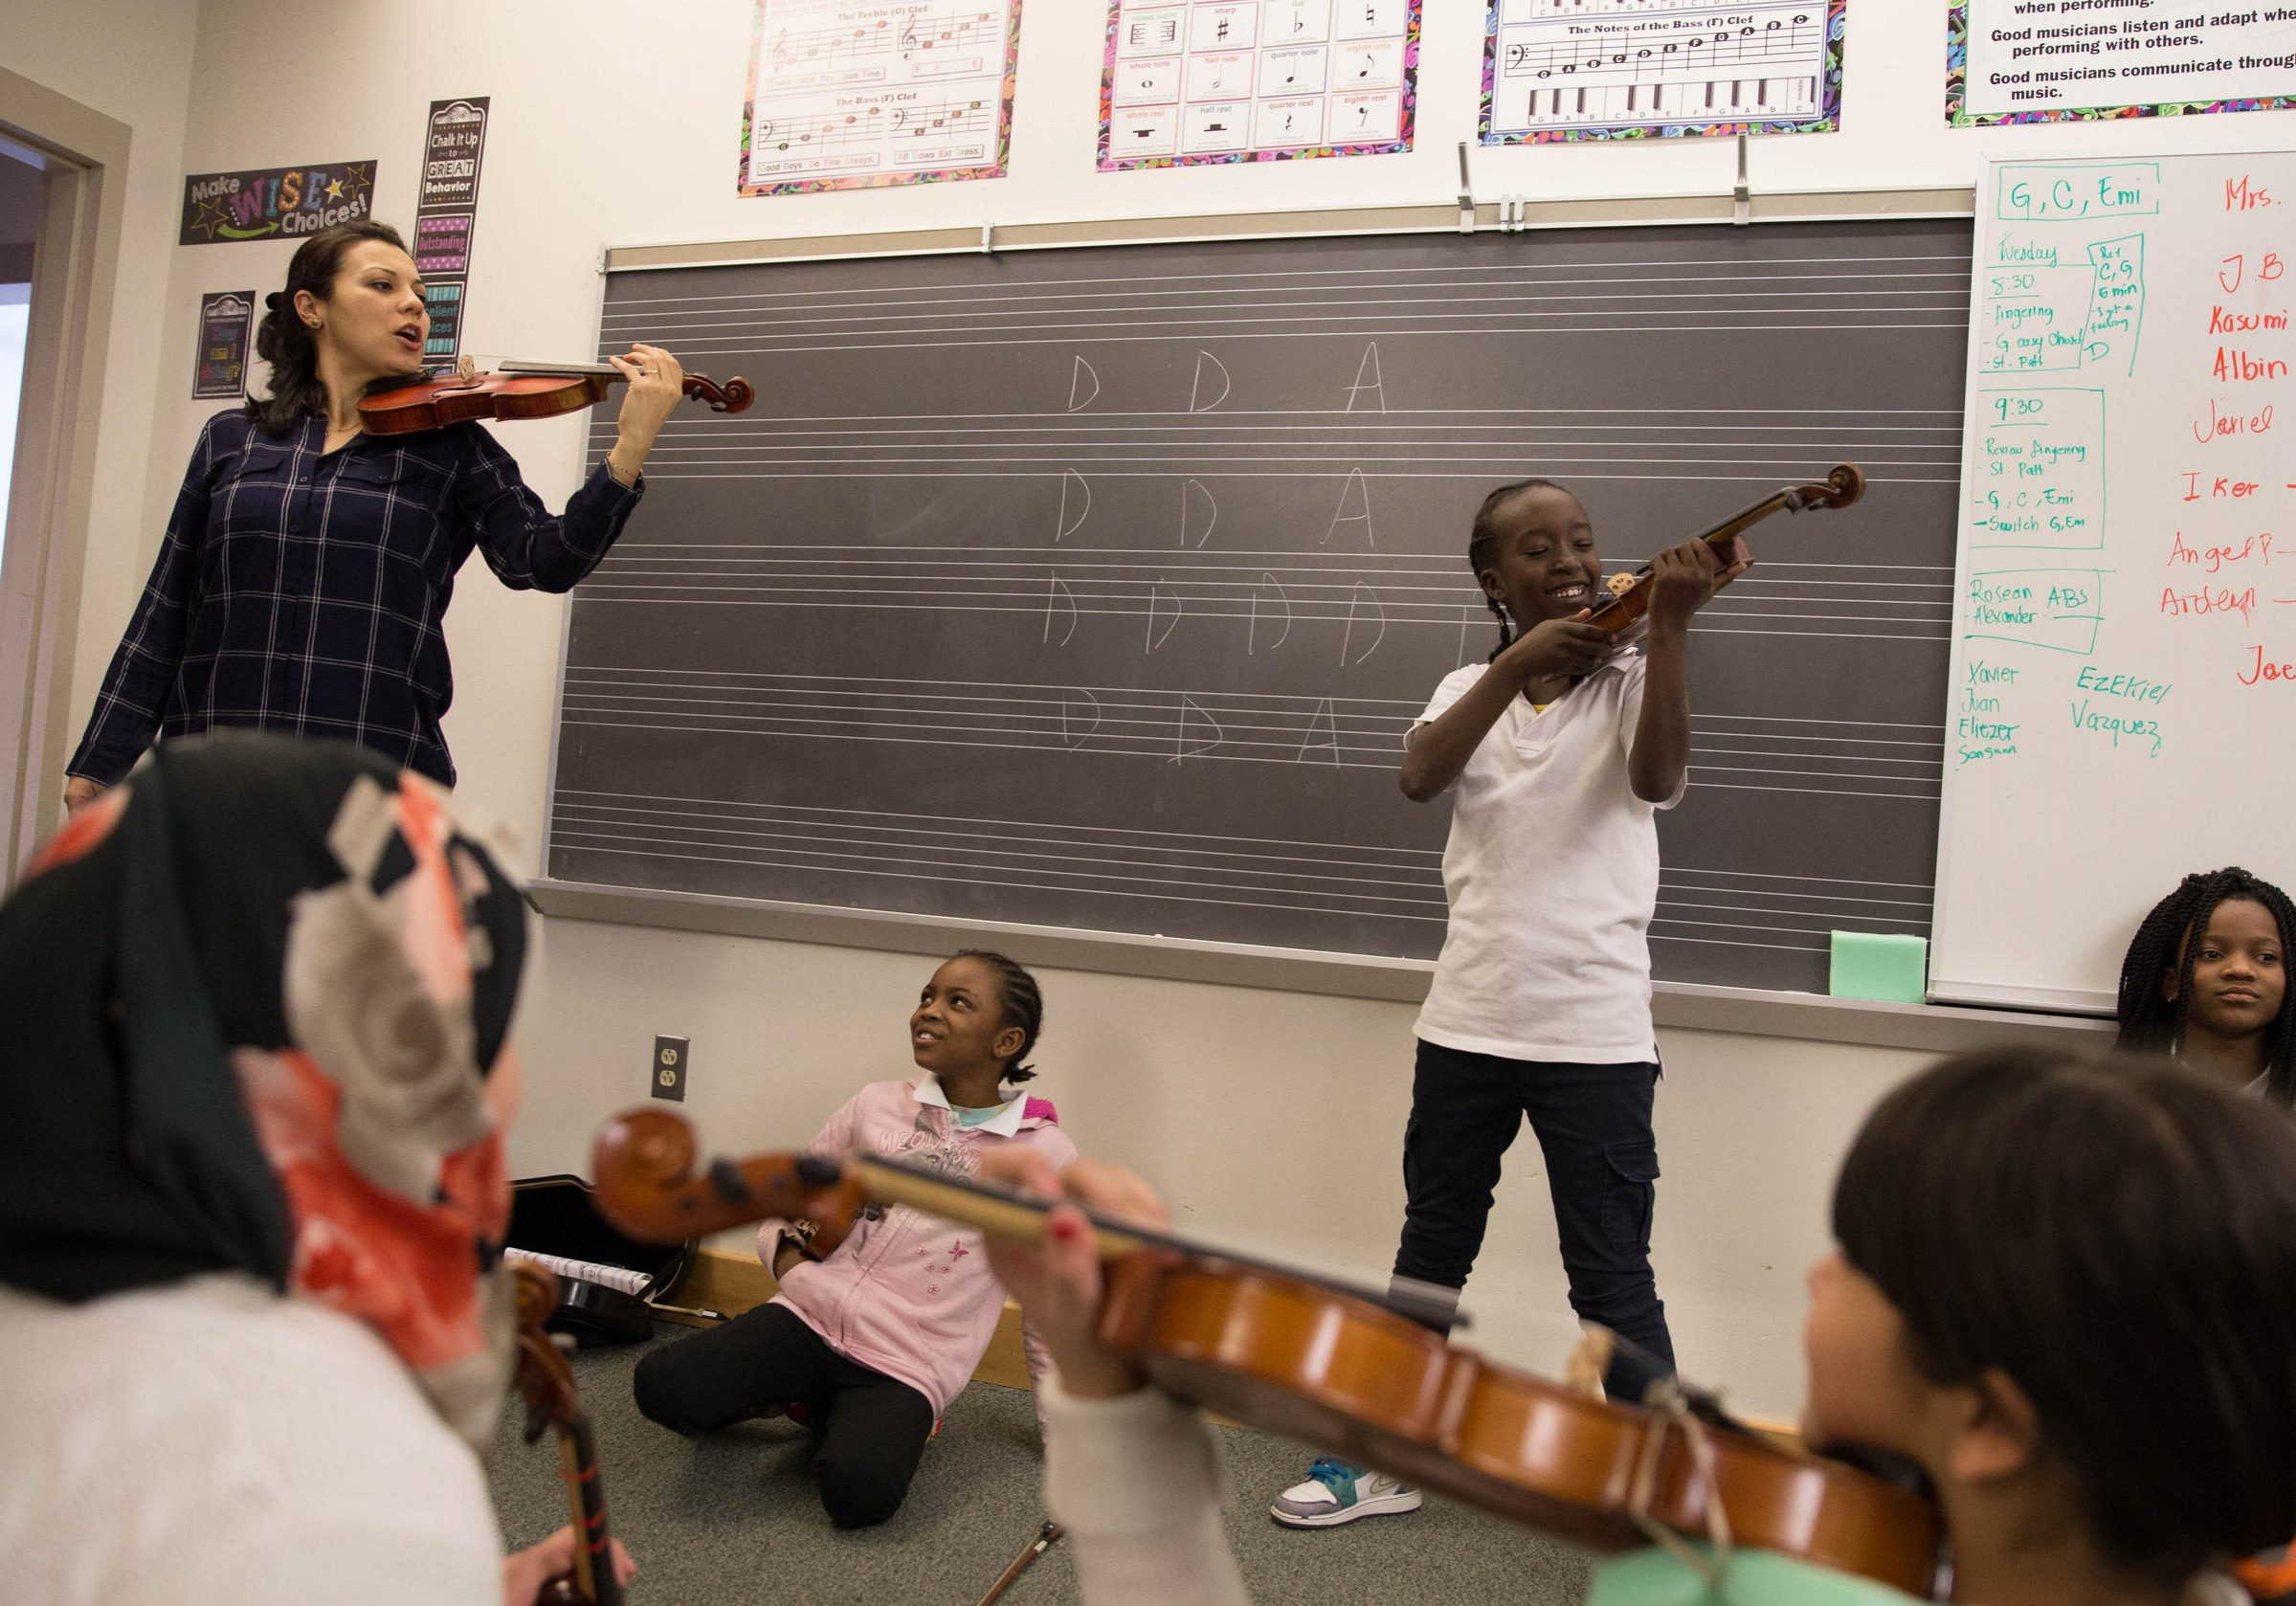 Yaira Matyakubova leads the violin class for young refugees. Photo by Ryan Caron King for WNPR